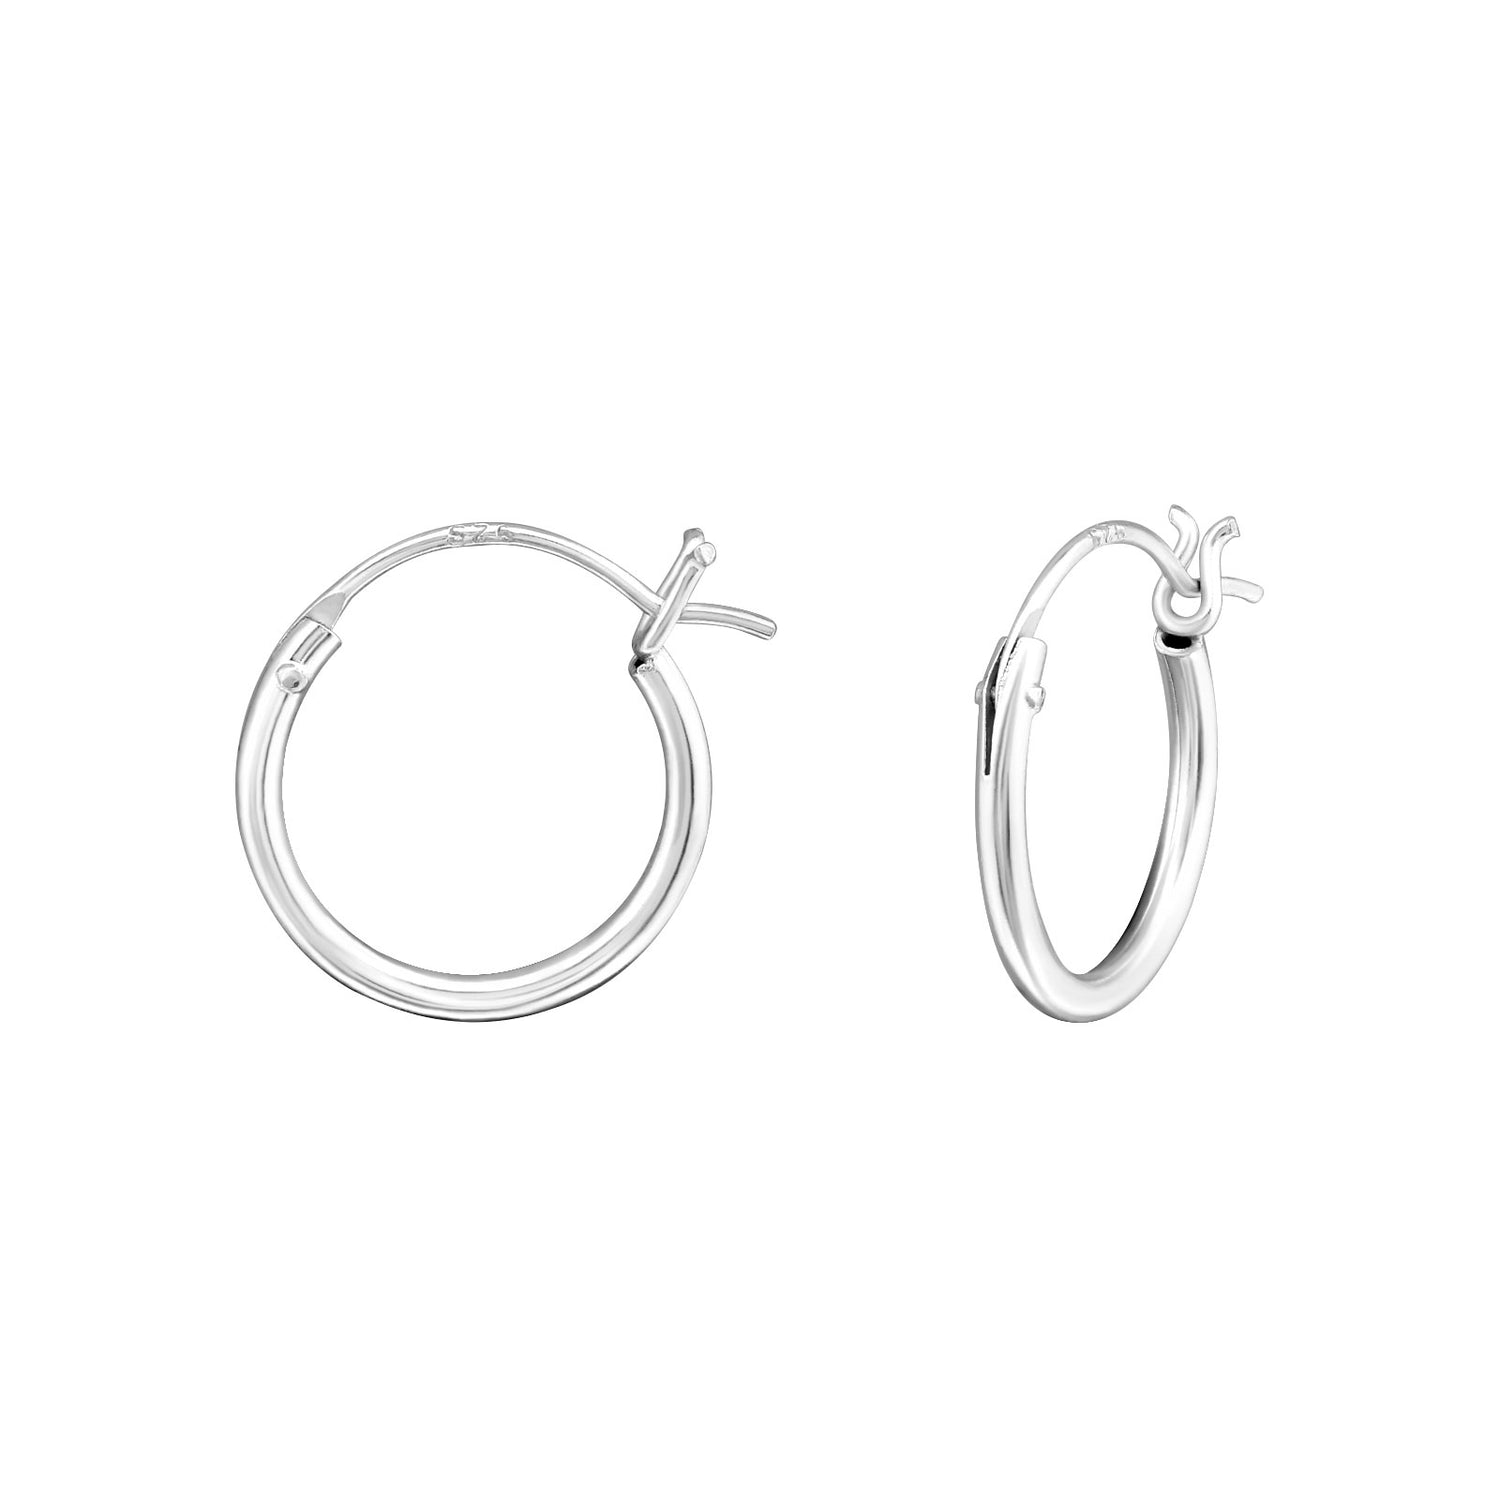 Tiny Timeless Hoop Earrings